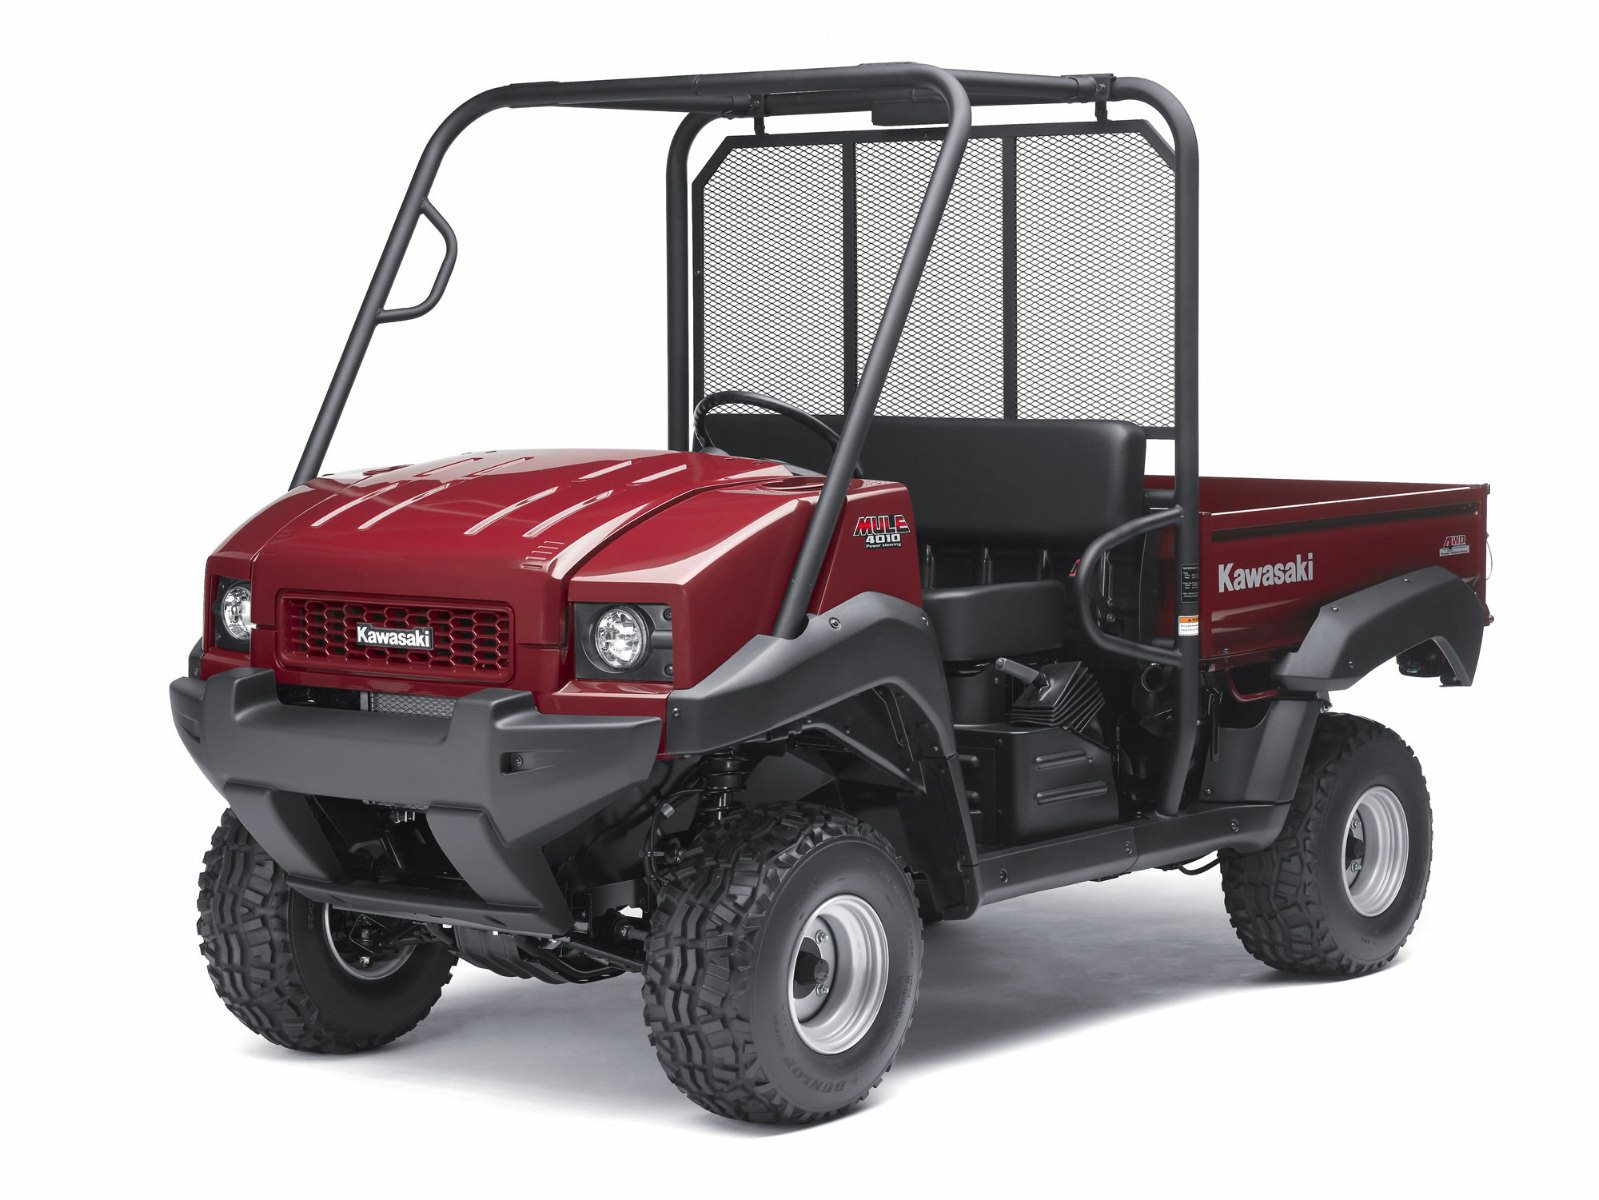 2012 Kawasaki Mule 4010 4x4 | Top Speed. »